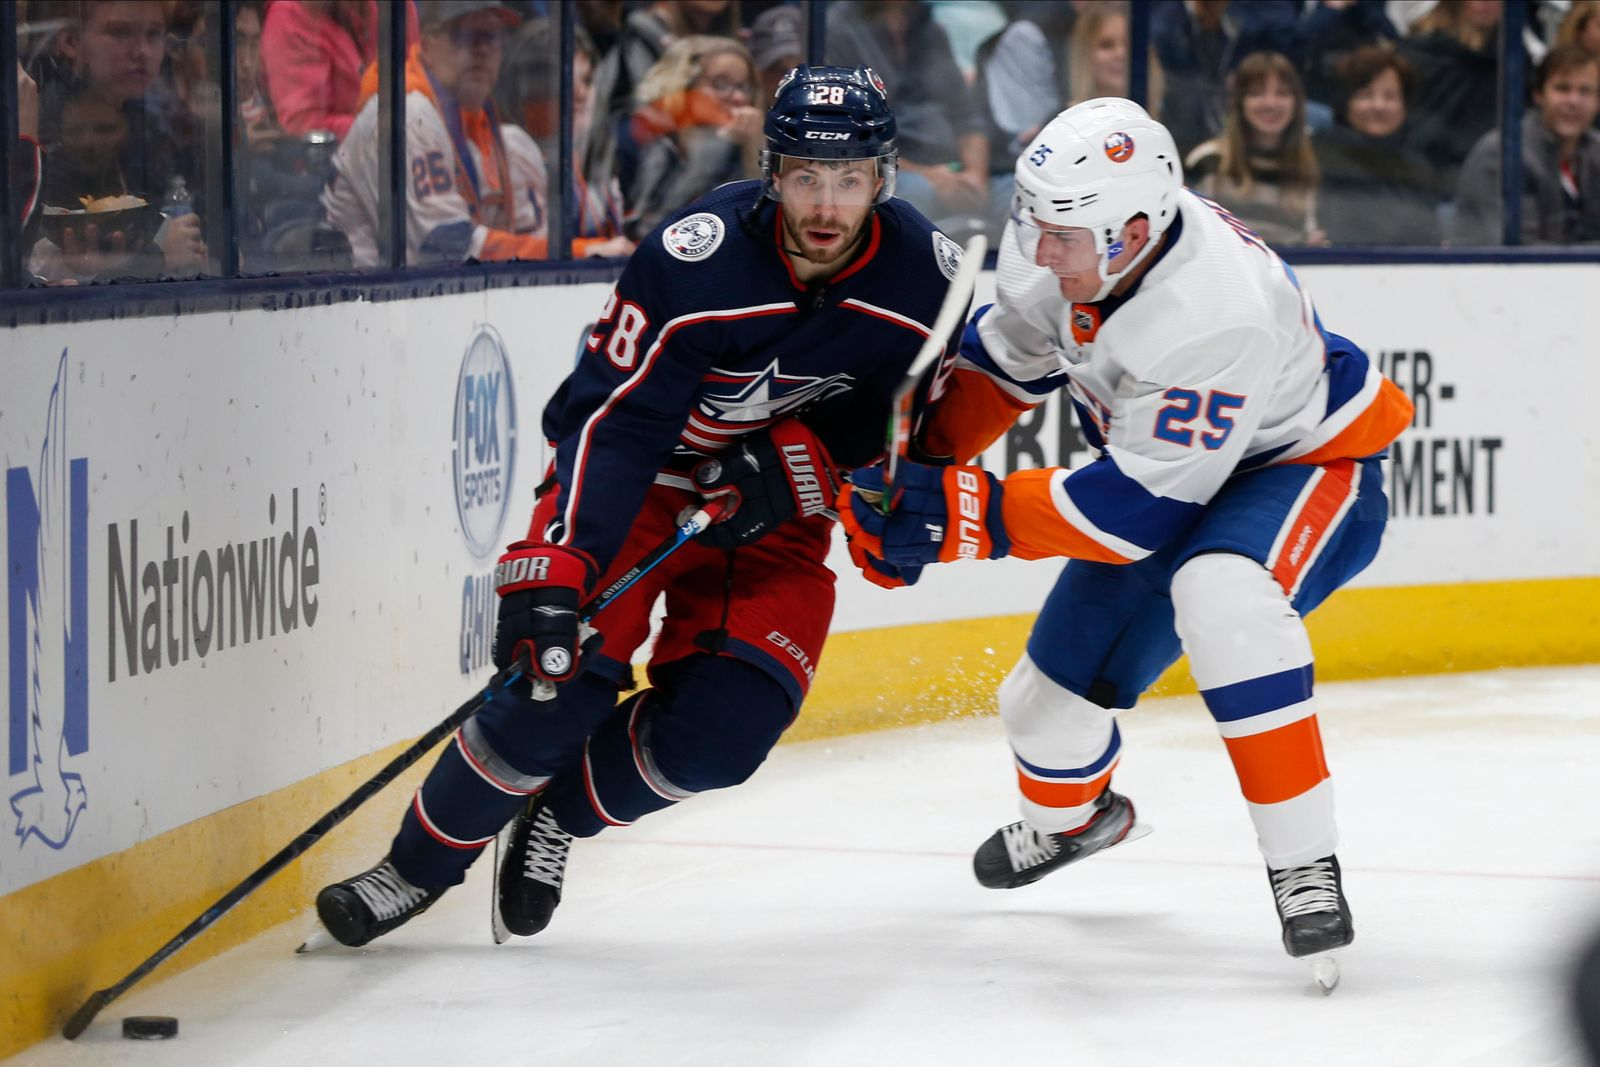 Columbus Blue Jackets' Oliver Bjorkstrand, left, of Denmark, looks for an open pass as New York Islanders' Devon Toews defends during the second period of an NHL hockey game Saturday, Oct. 19, 2019, in Columbus, Ohio. (AP Photo/Jay LaPrete)